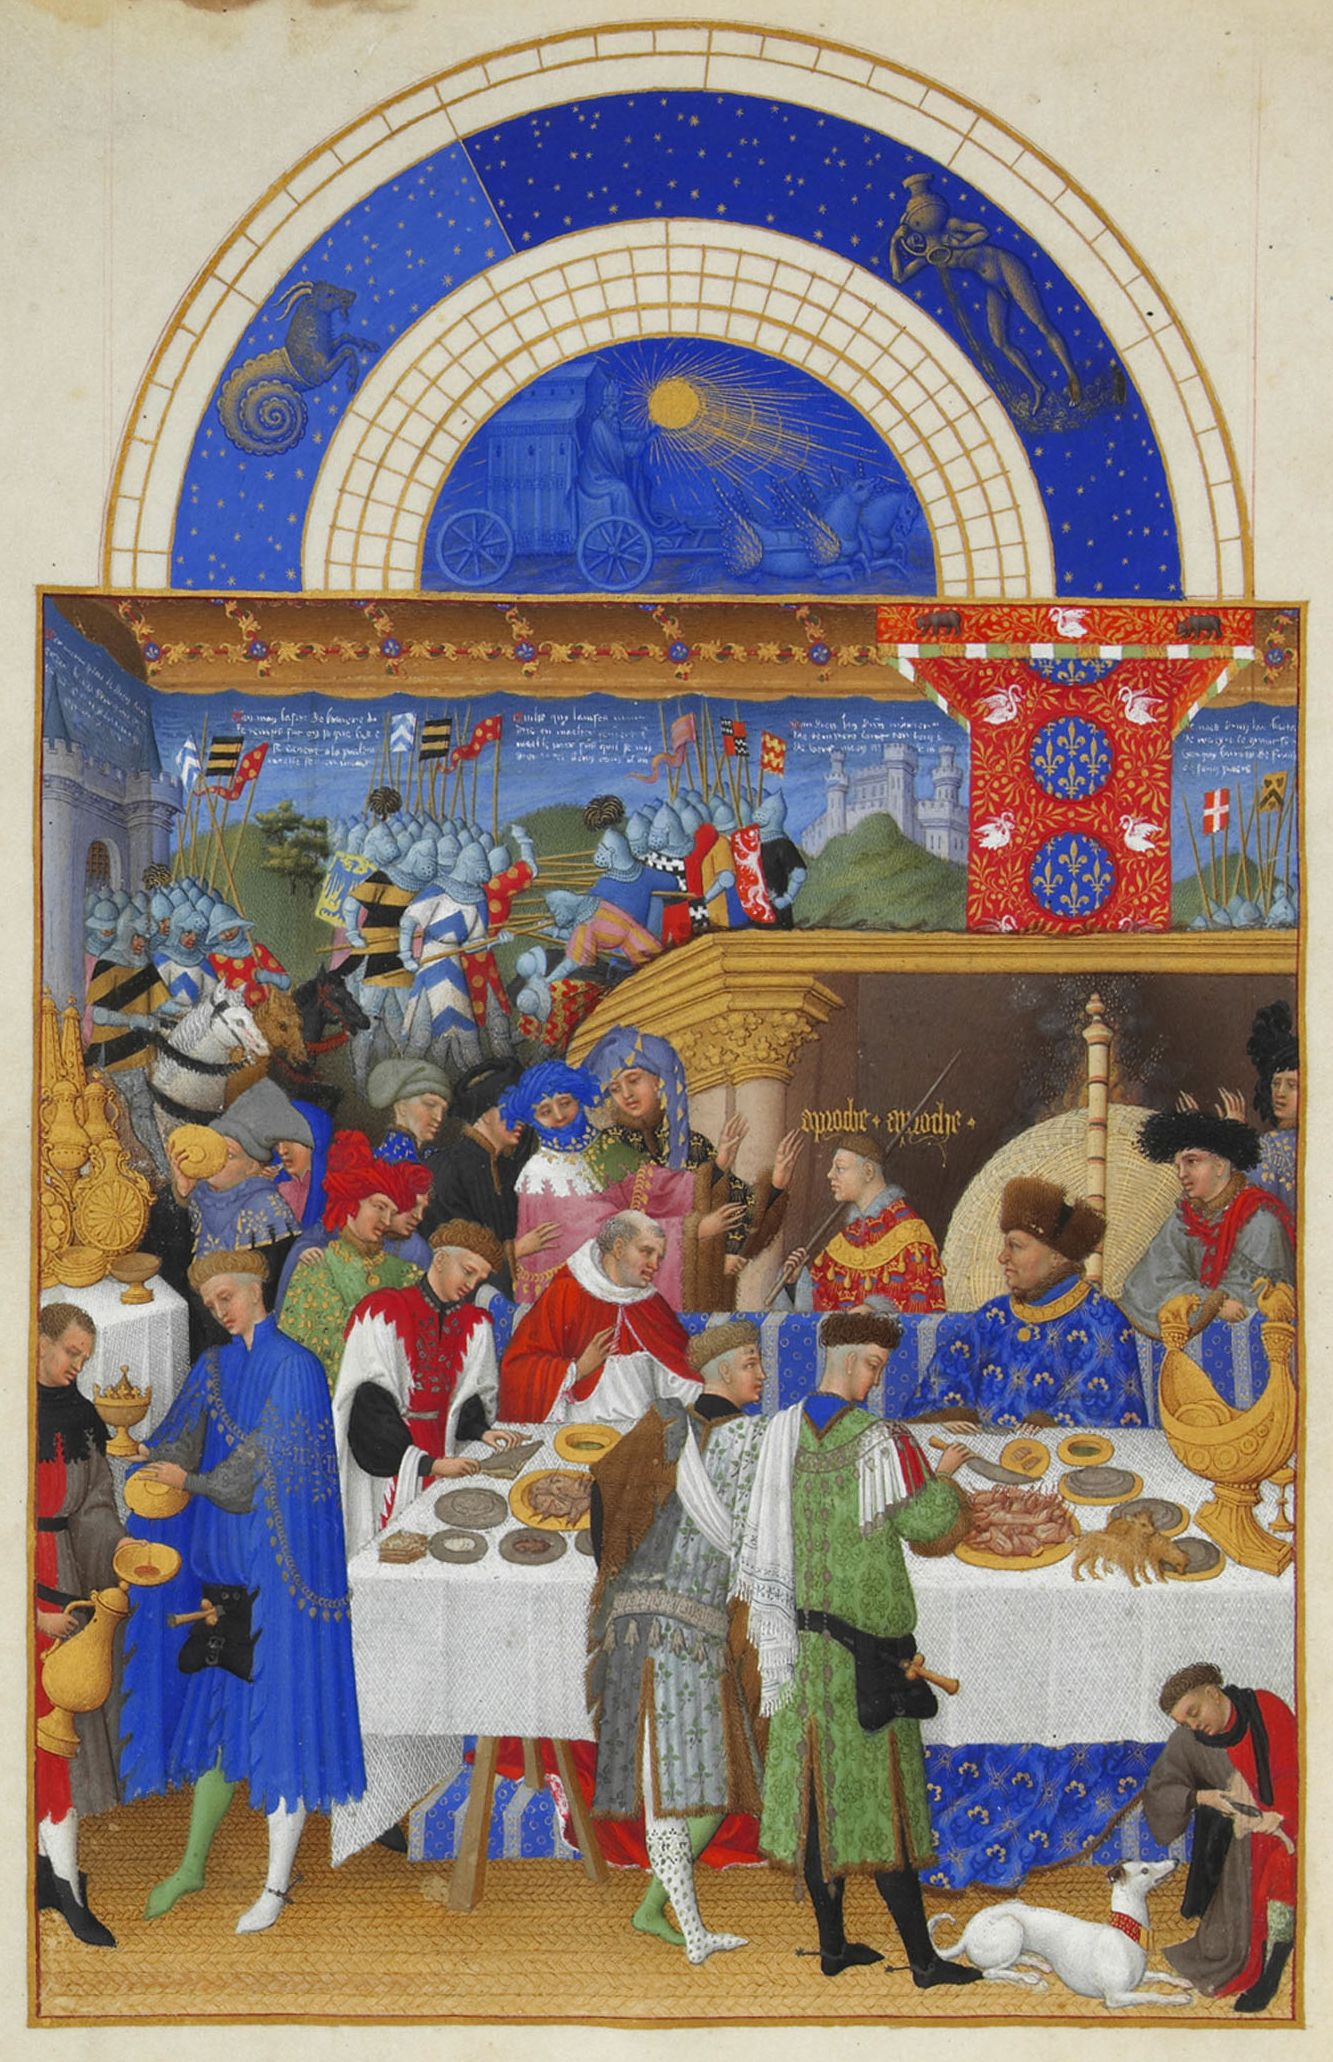 Duc de Berry Book of Hours